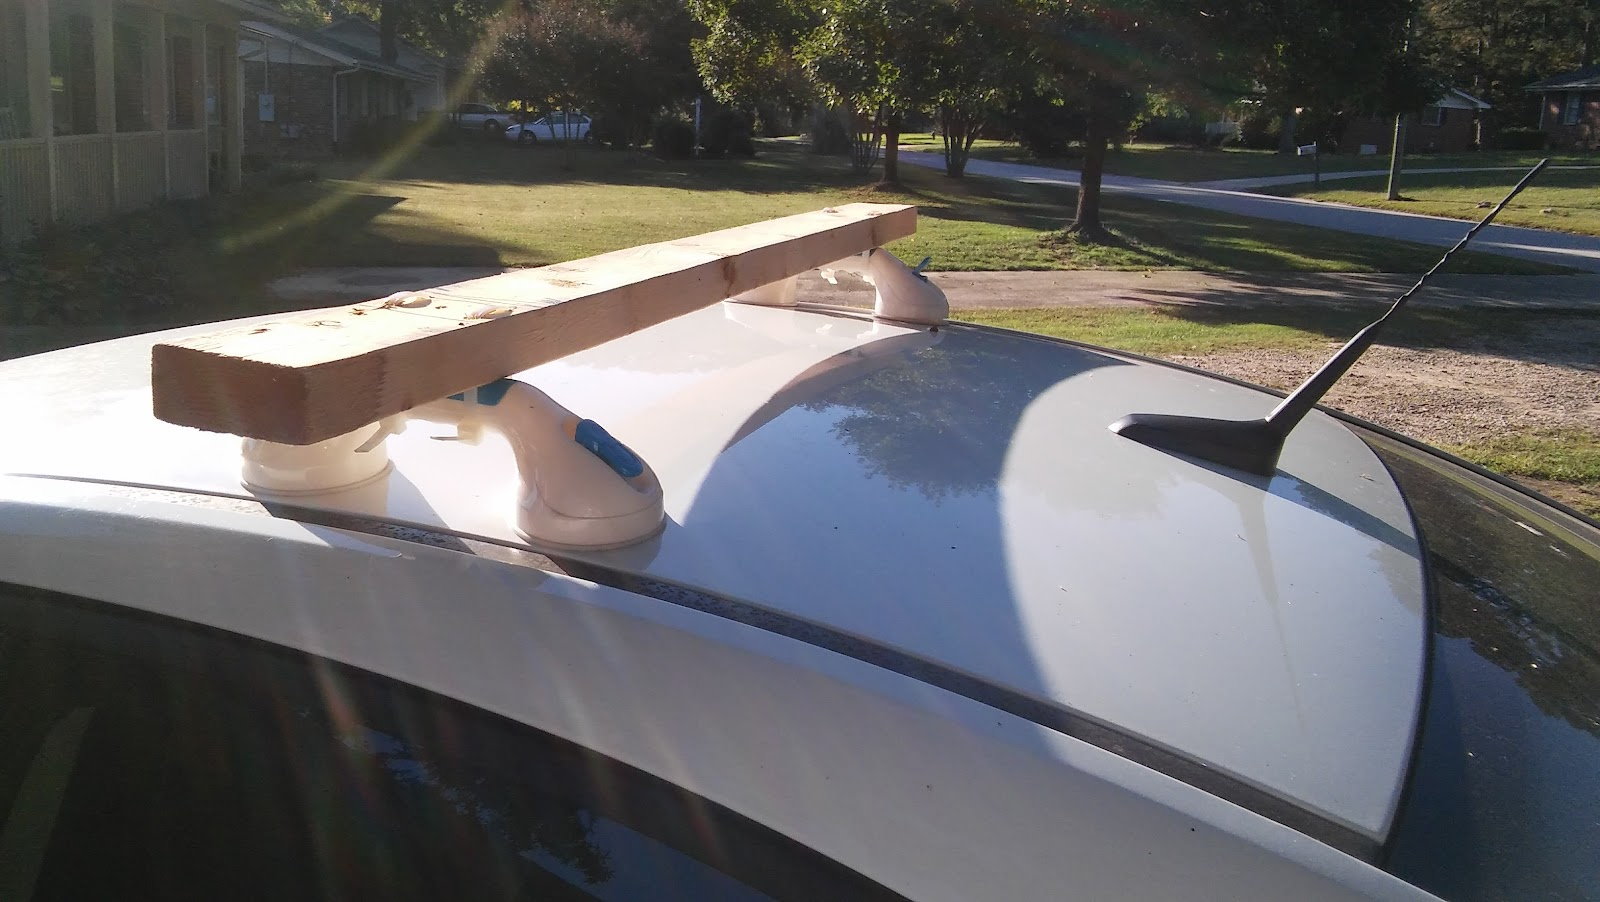 Paddling and Sailing: DIY Cheap Roof Racks